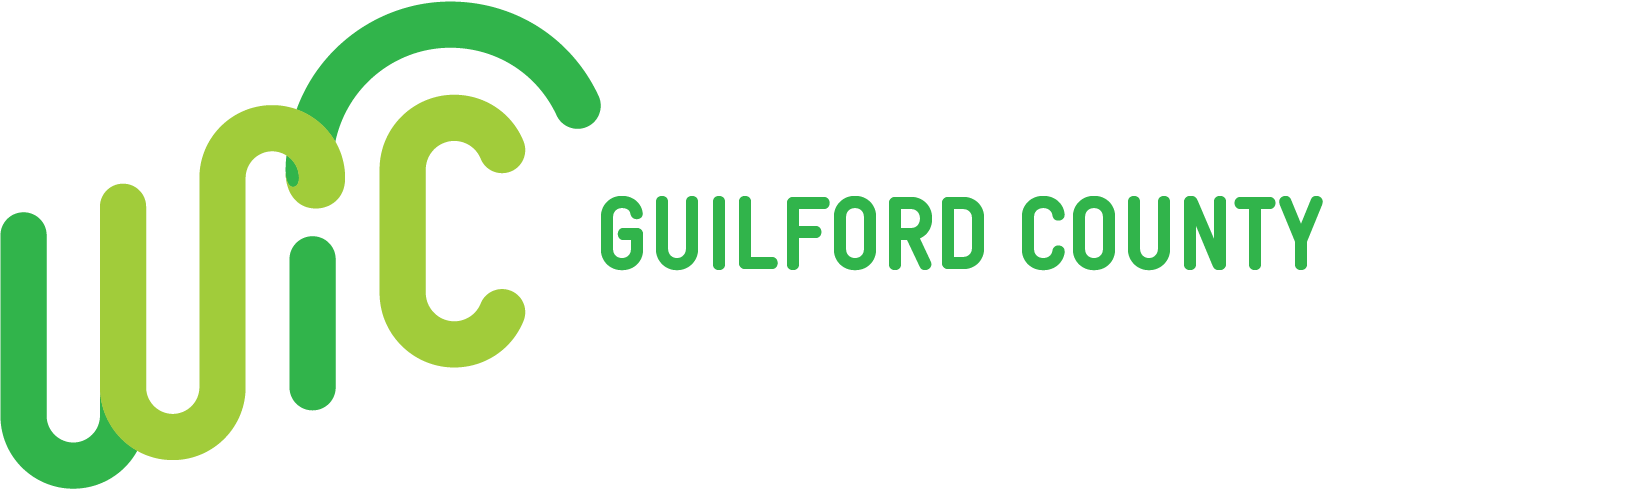 WIC Guilford County logo